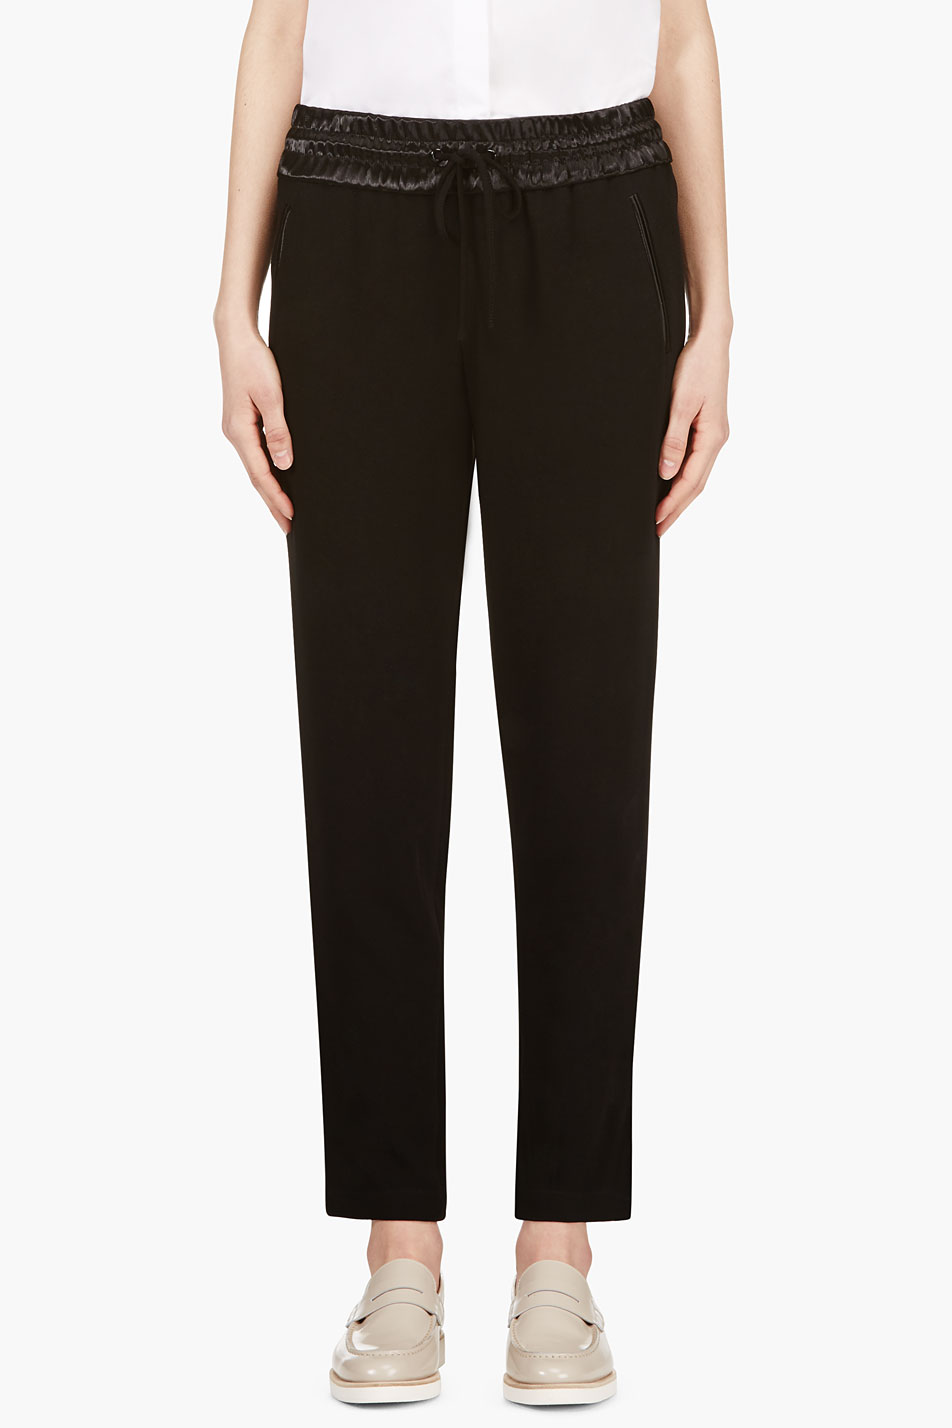 rag and bone black gollsy_trimmed easy trousers